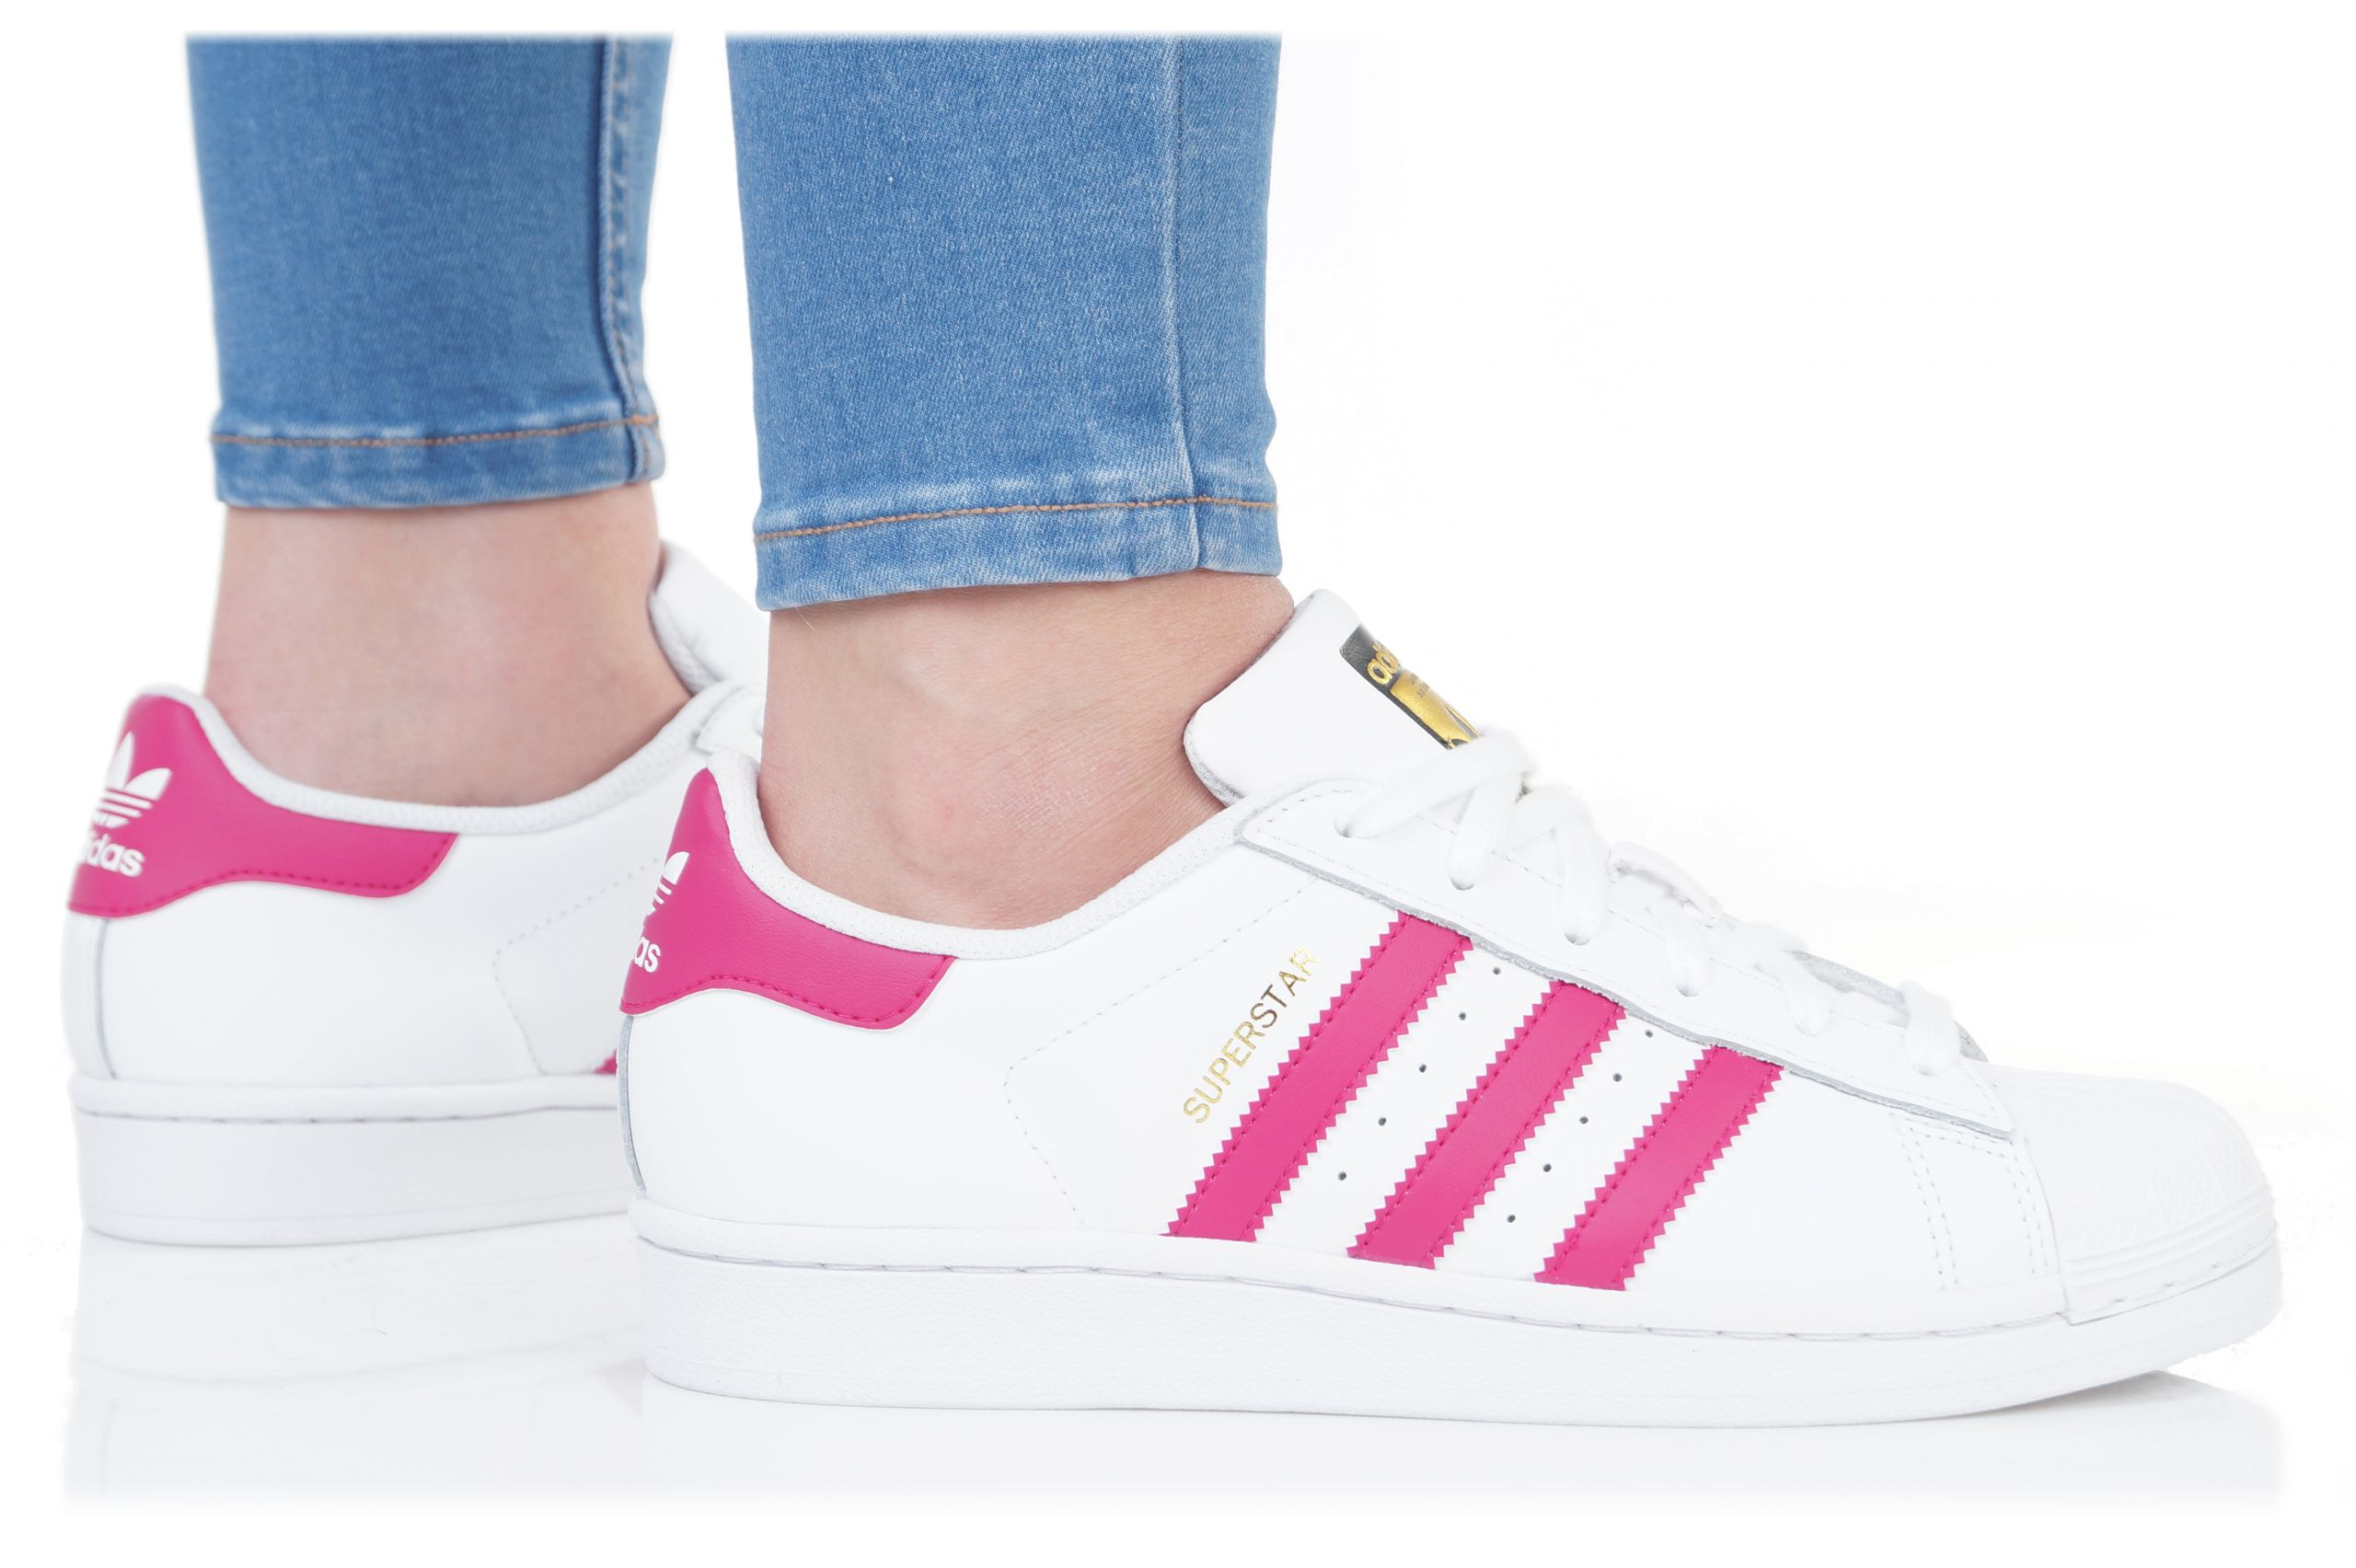 new arrivals 6642a e570e BUTY ADIDAS SUPERSTAR FOUNDATION B23644 R. 35 1/2 ...